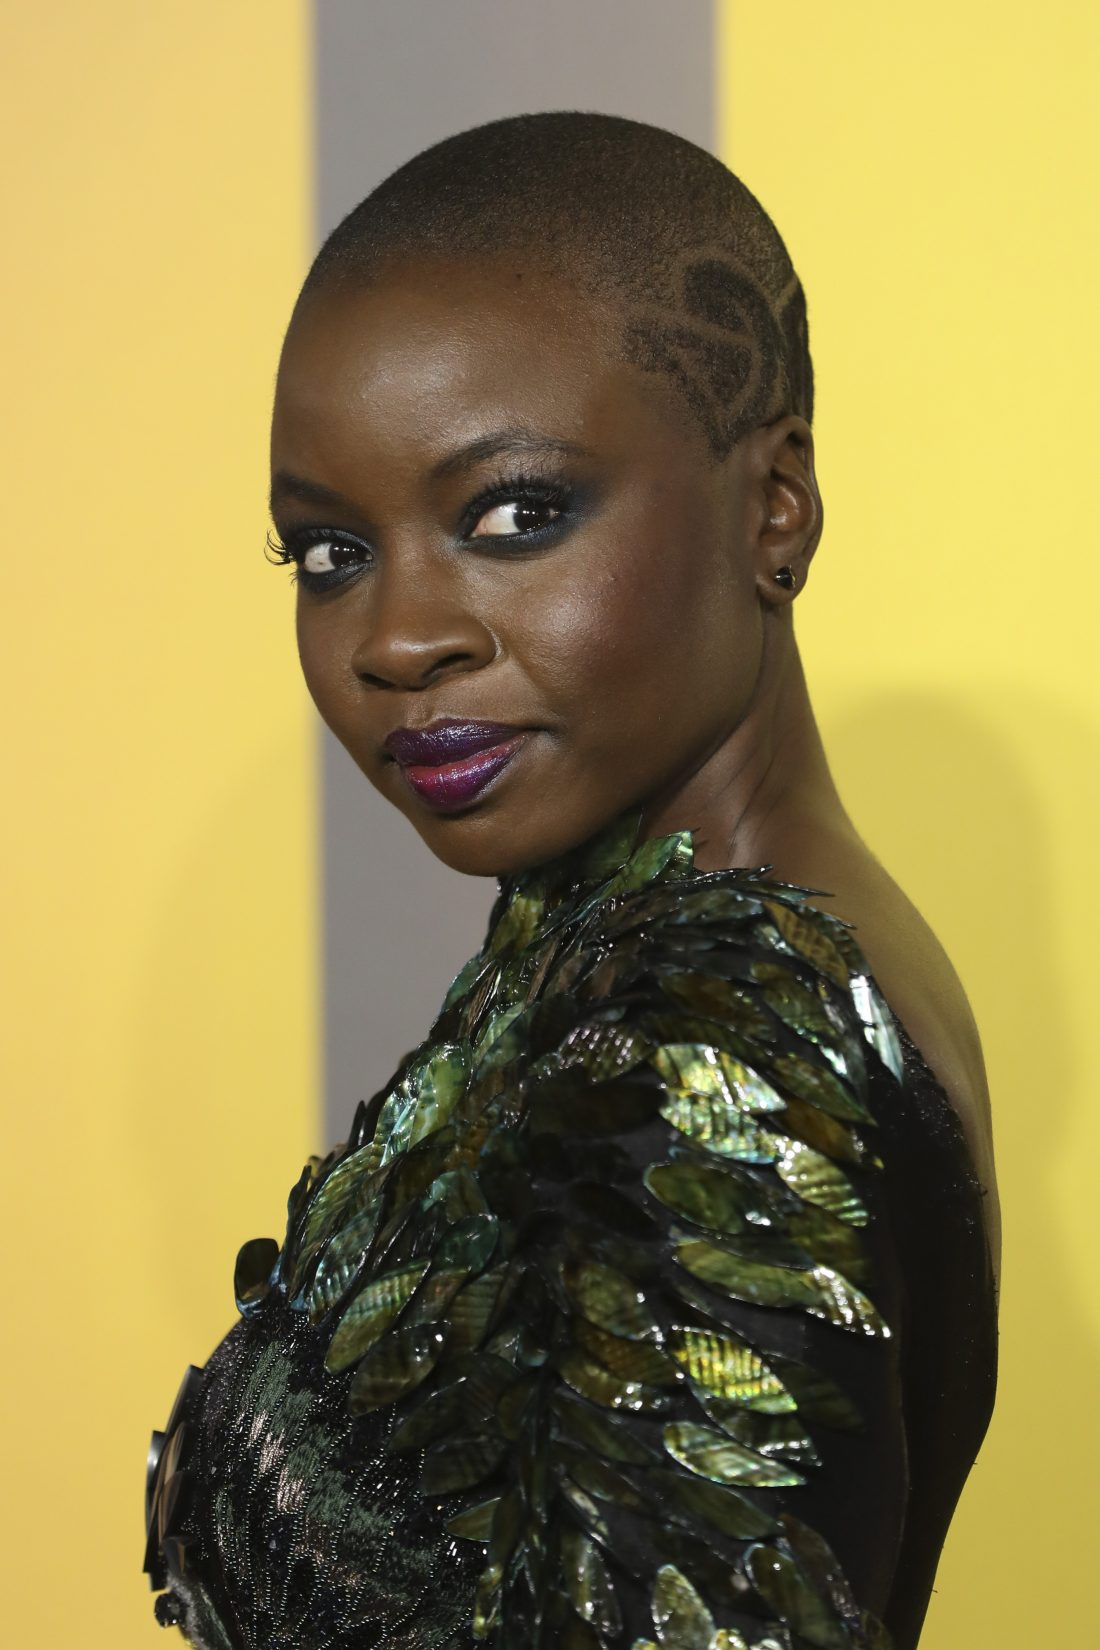 Black Panther star Danai Gurira: Call me by my name!